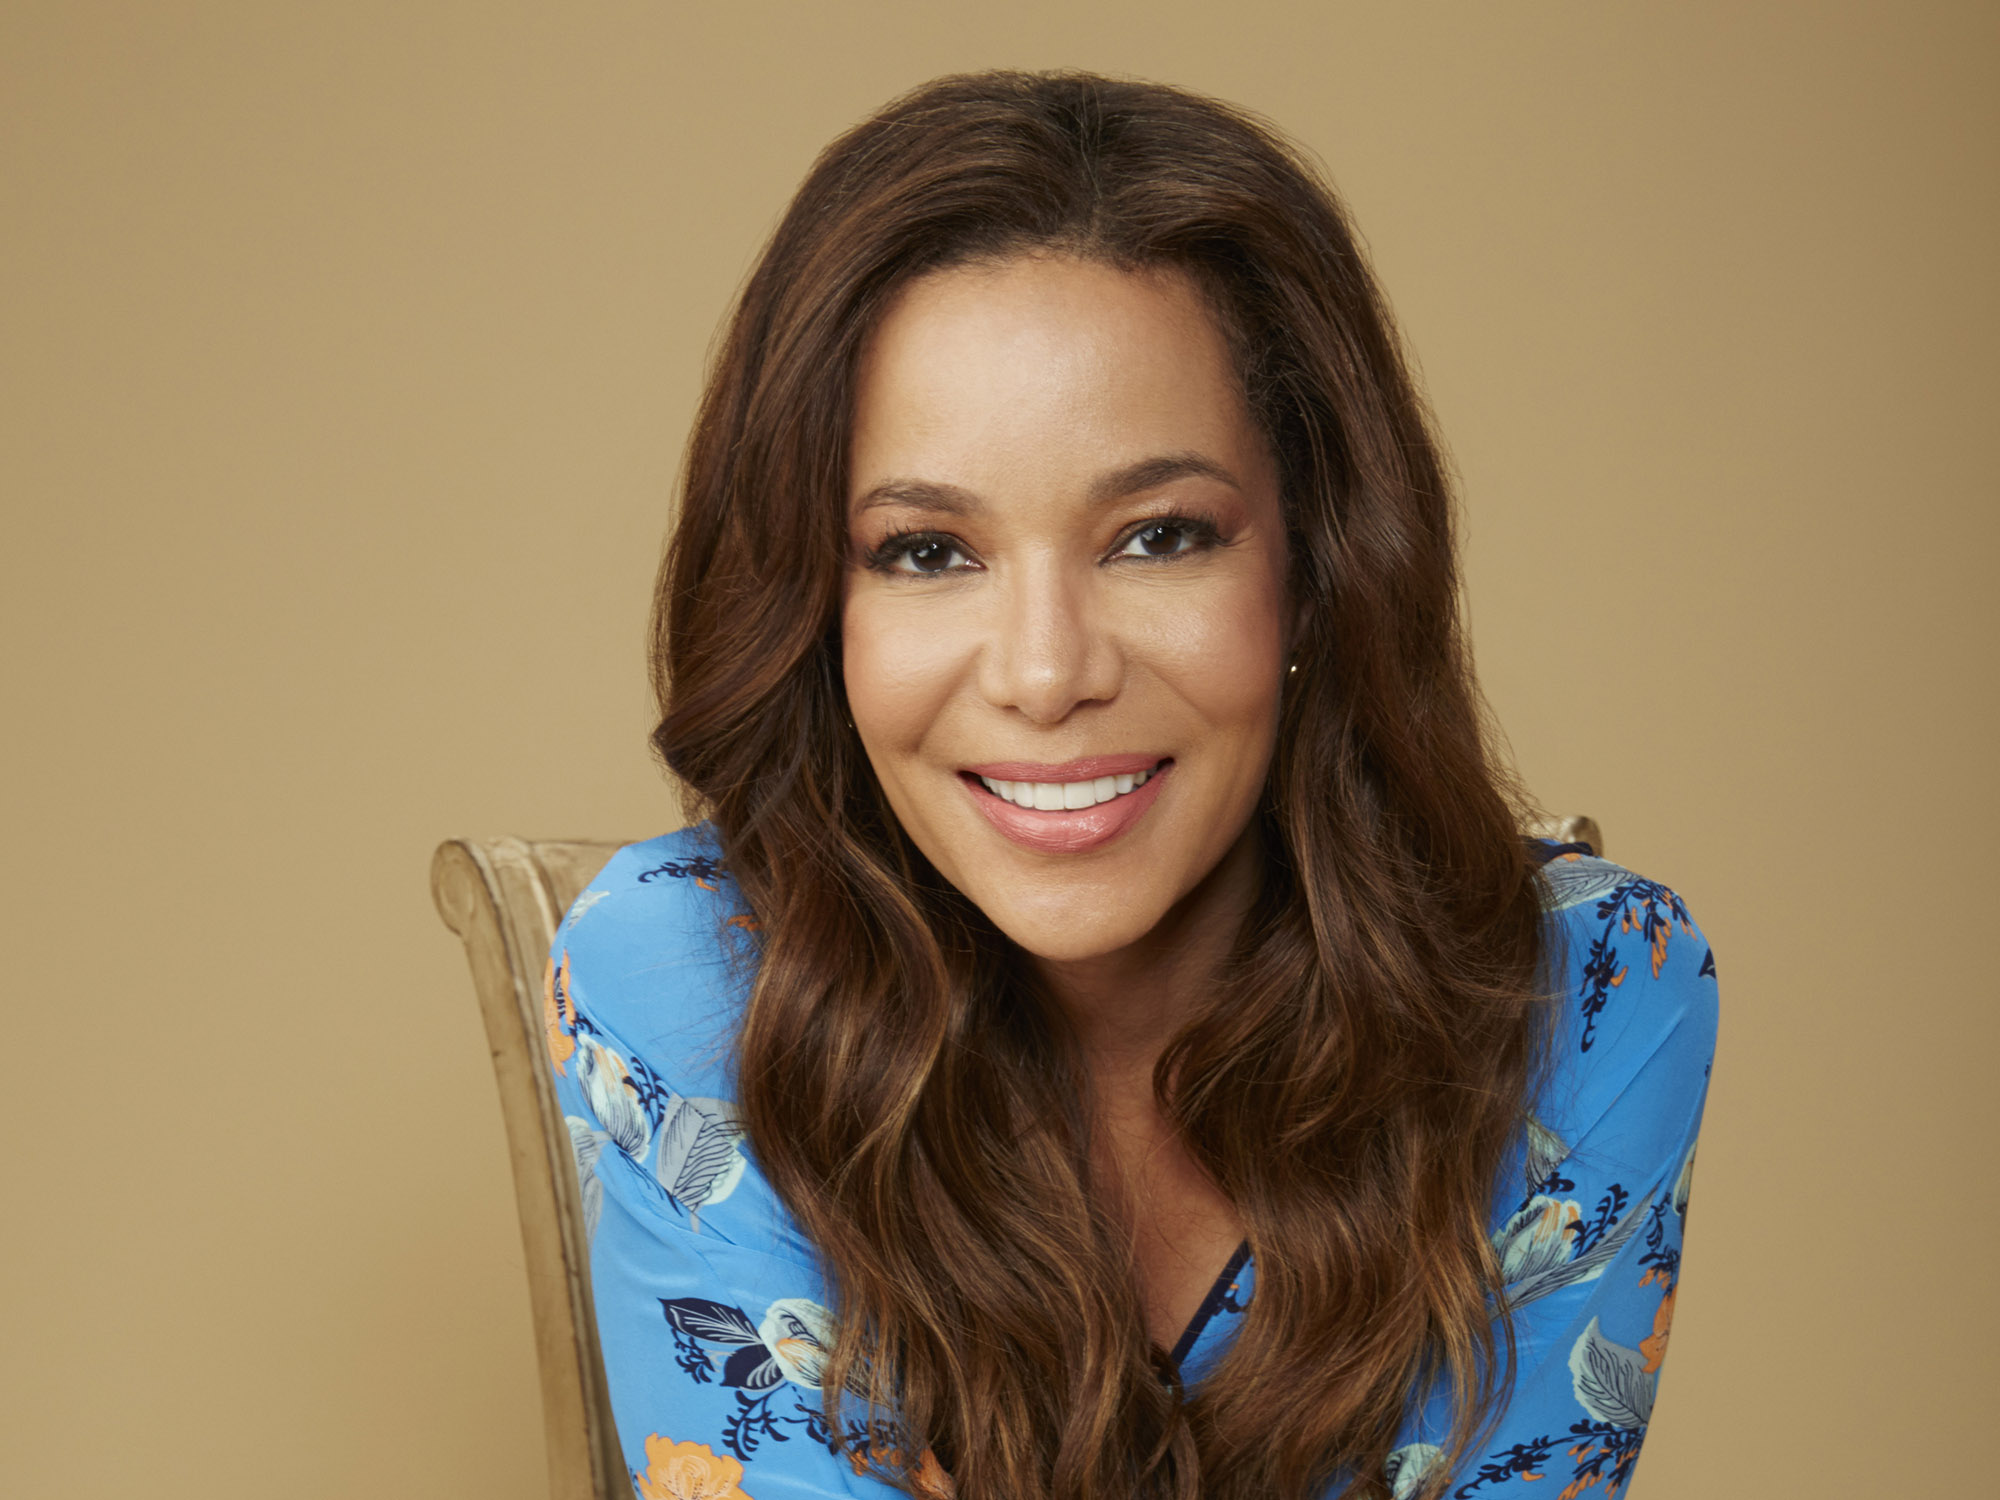 How tall is Sunny Hostin?